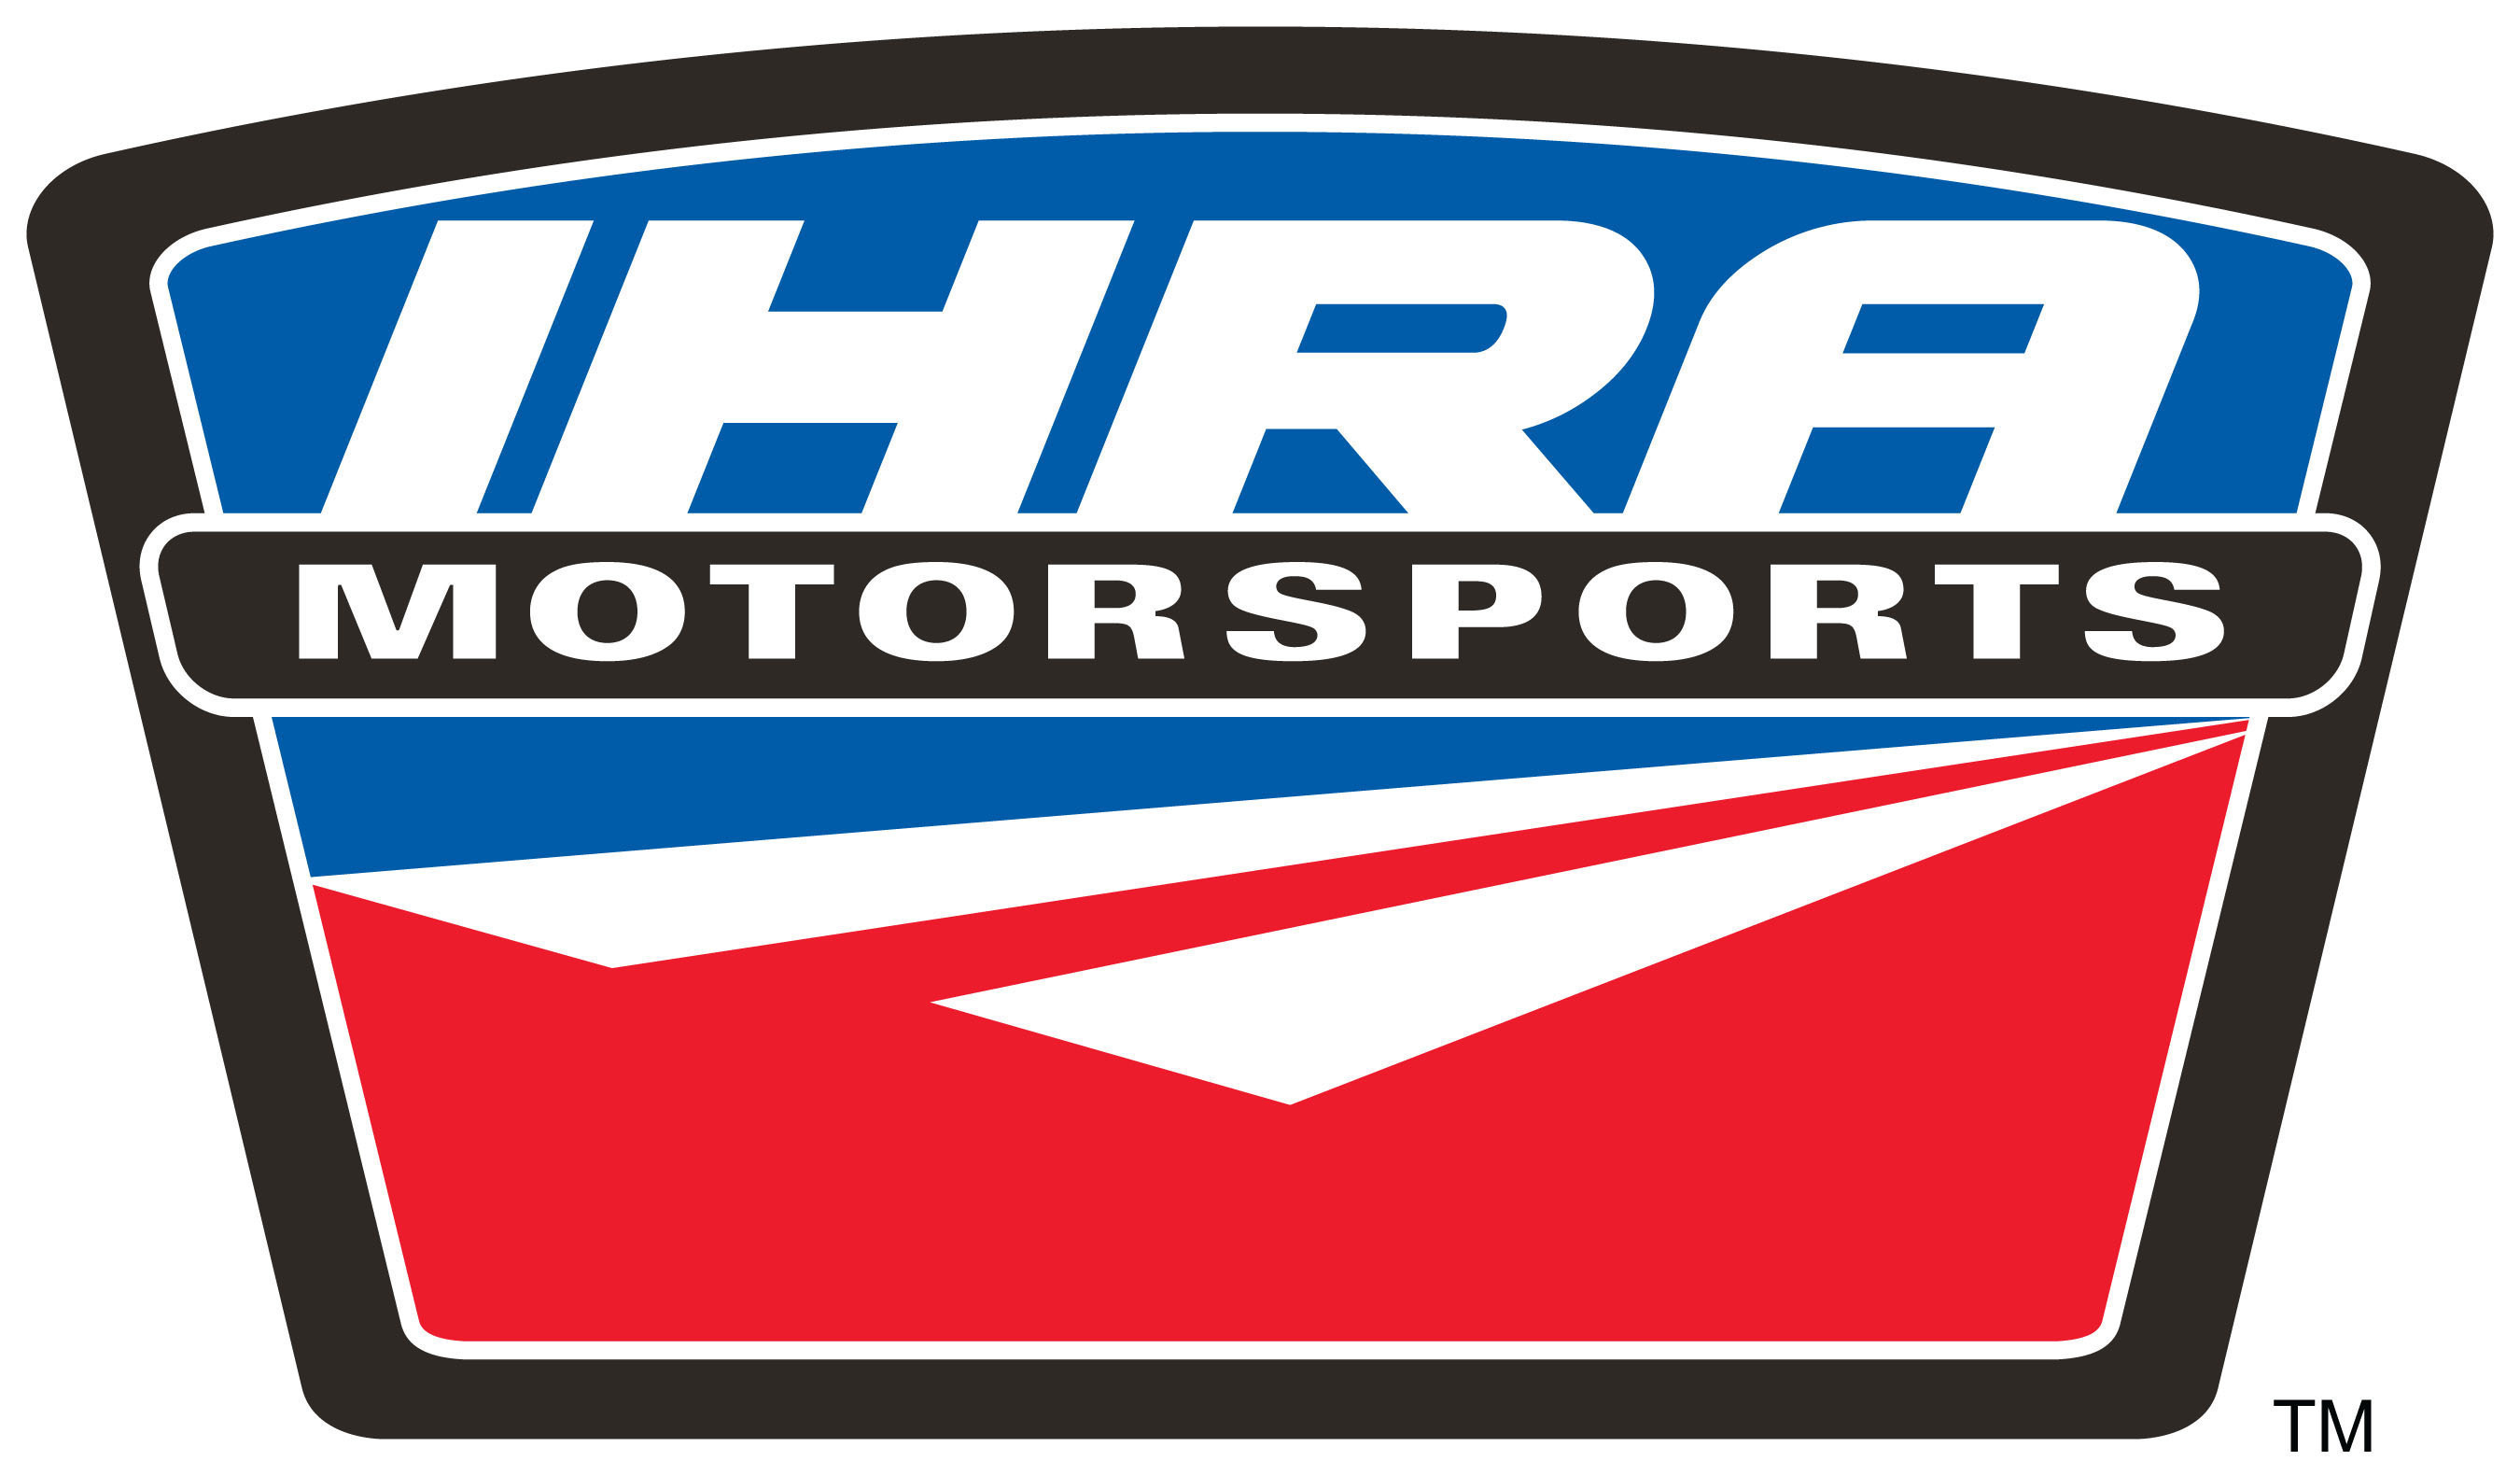 IHRA Outlines Australian Expansion Following Successful 400 Thunder Season Debut